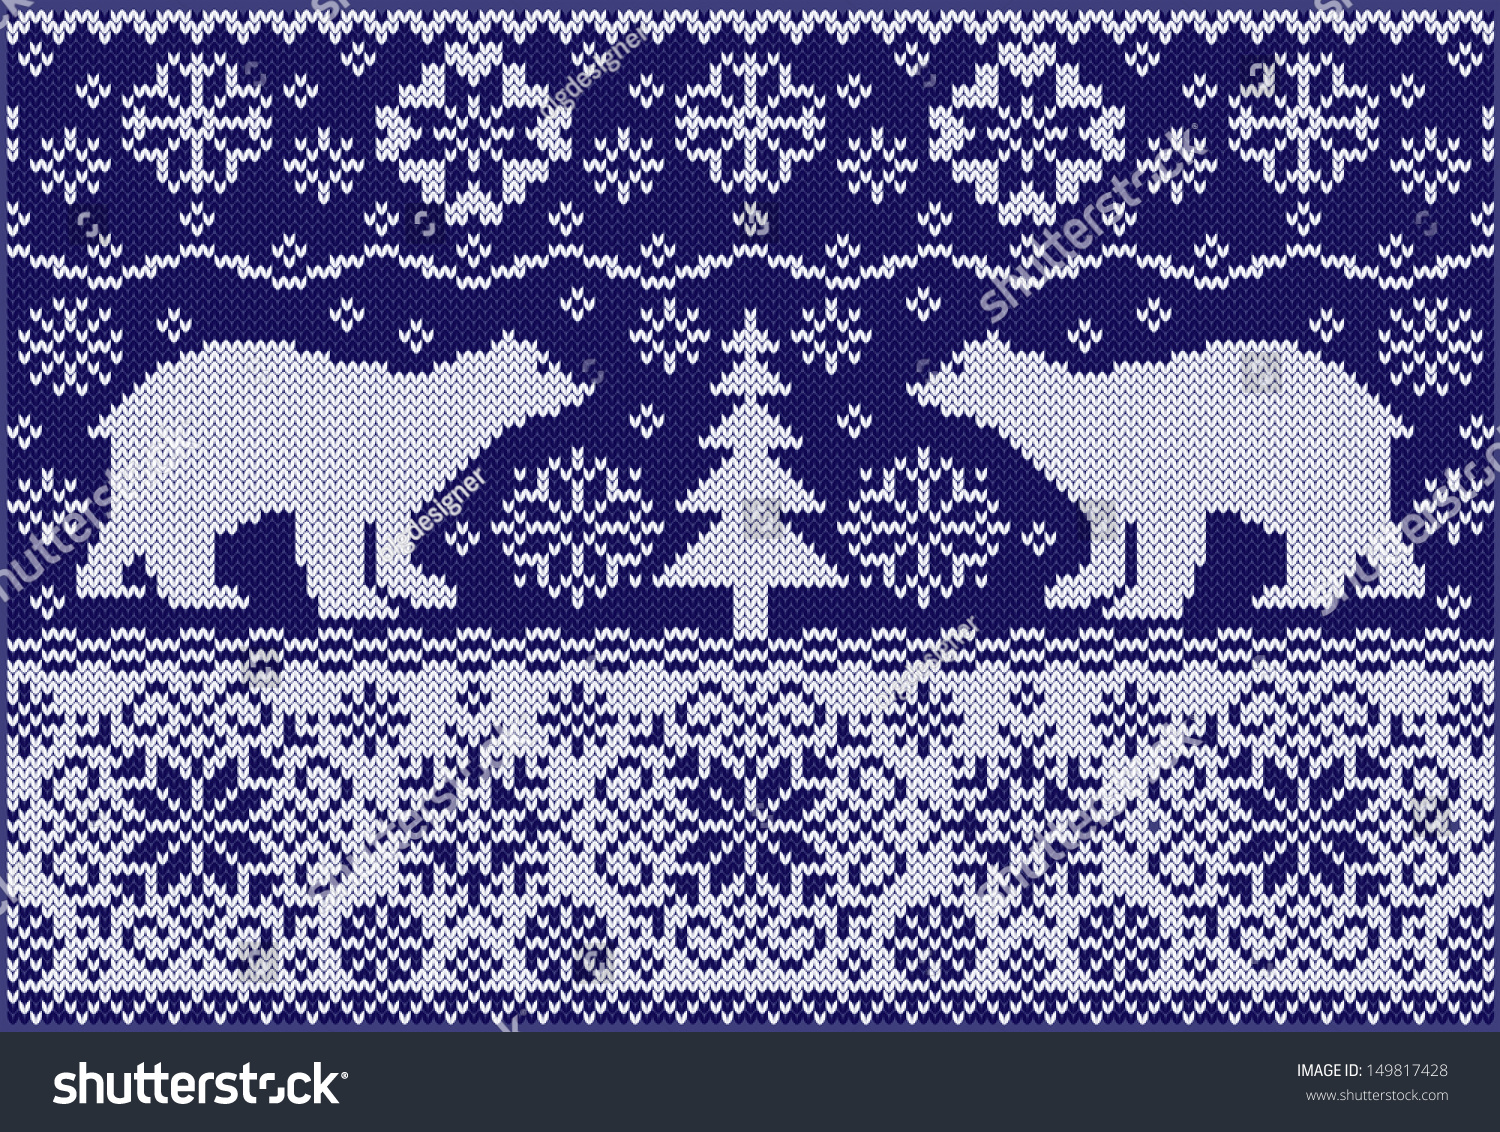 Fashionable Knitting Patterns : Knitted Ornament With Bears. Fashionable Northern Pattern. Knitted Style. Cre...